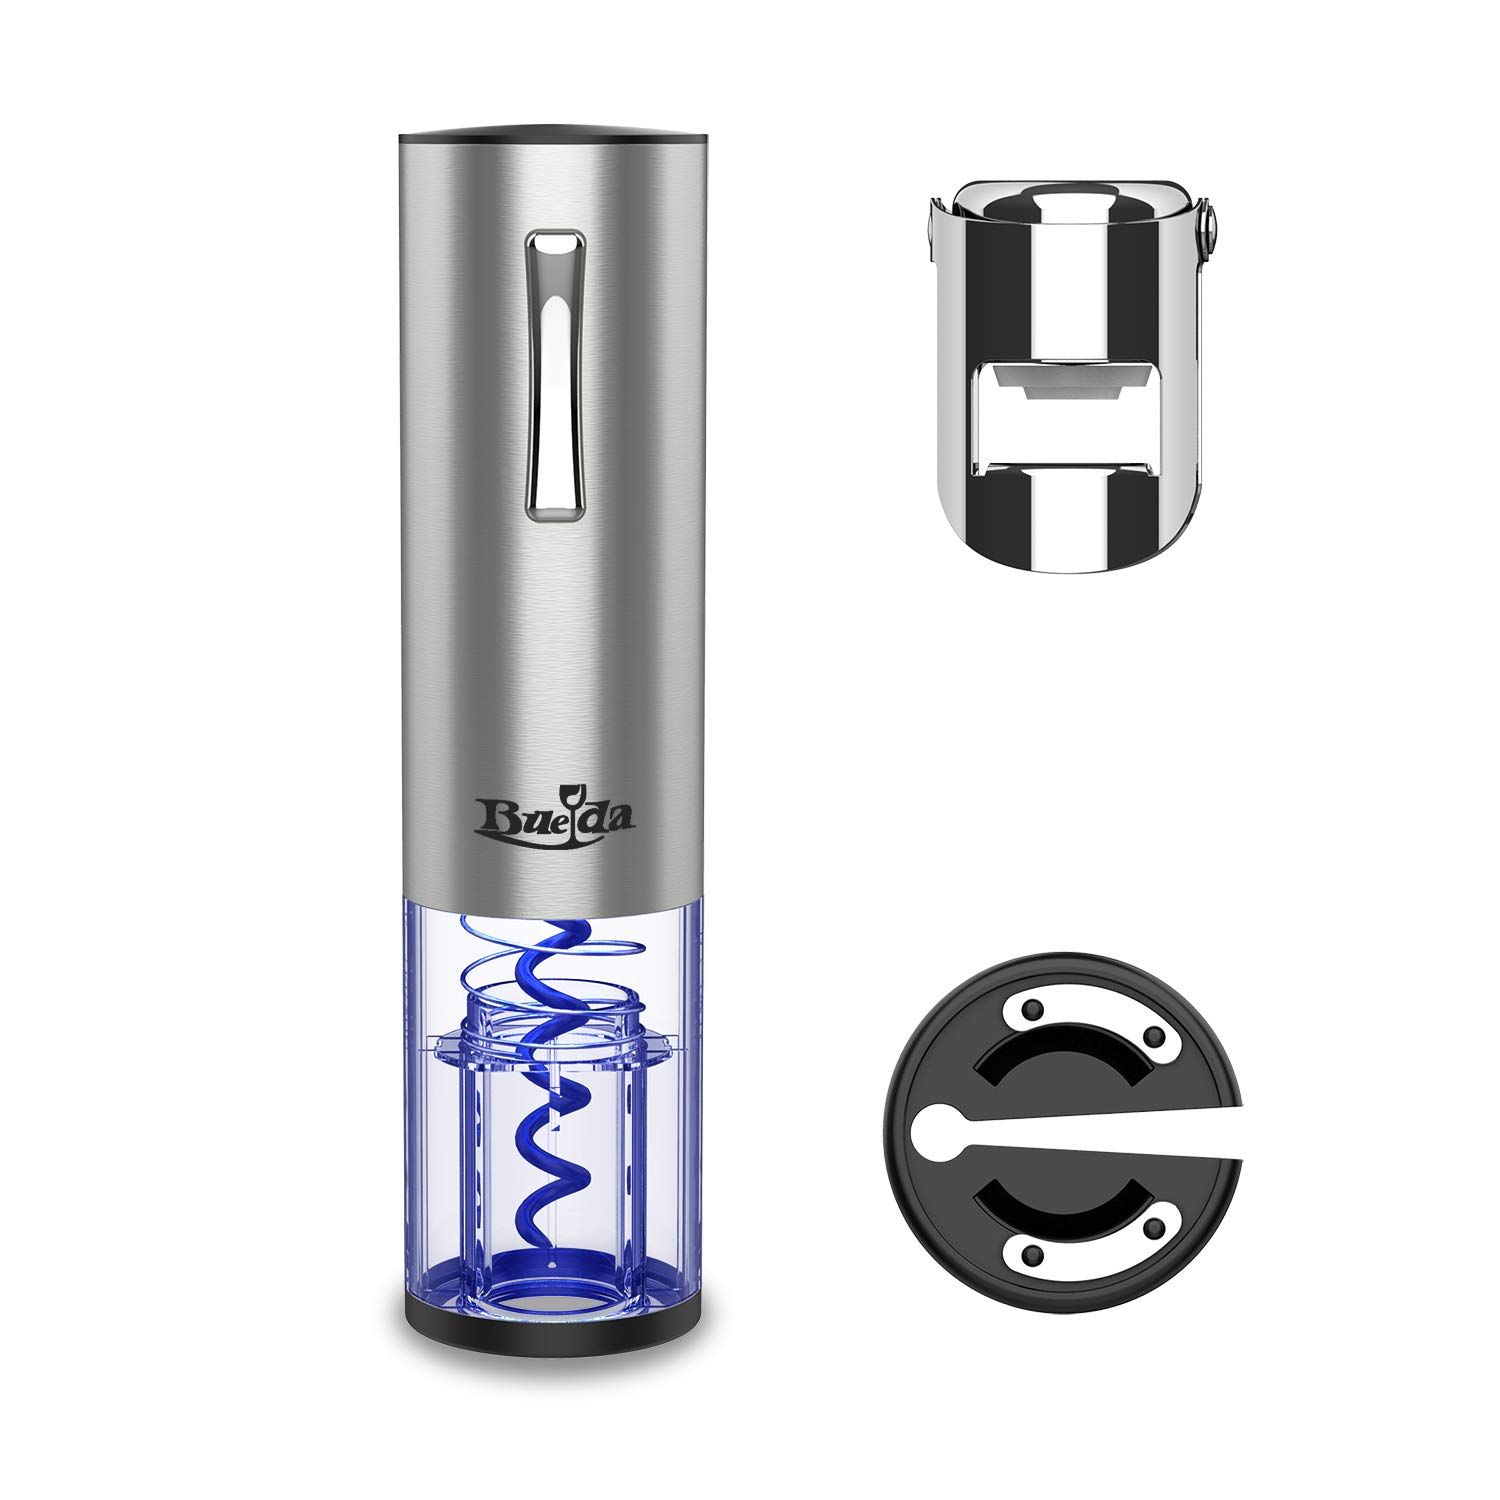 CRMPro Electric Wine Opener, Bottle opener professional, automatically Wine Opener, Stainless Steel Electric Corkscrew, Cordless Wine Bottle Opener Set with Foil Cutter and Rechargeable Lithium Battery, Silver by CRMPRO